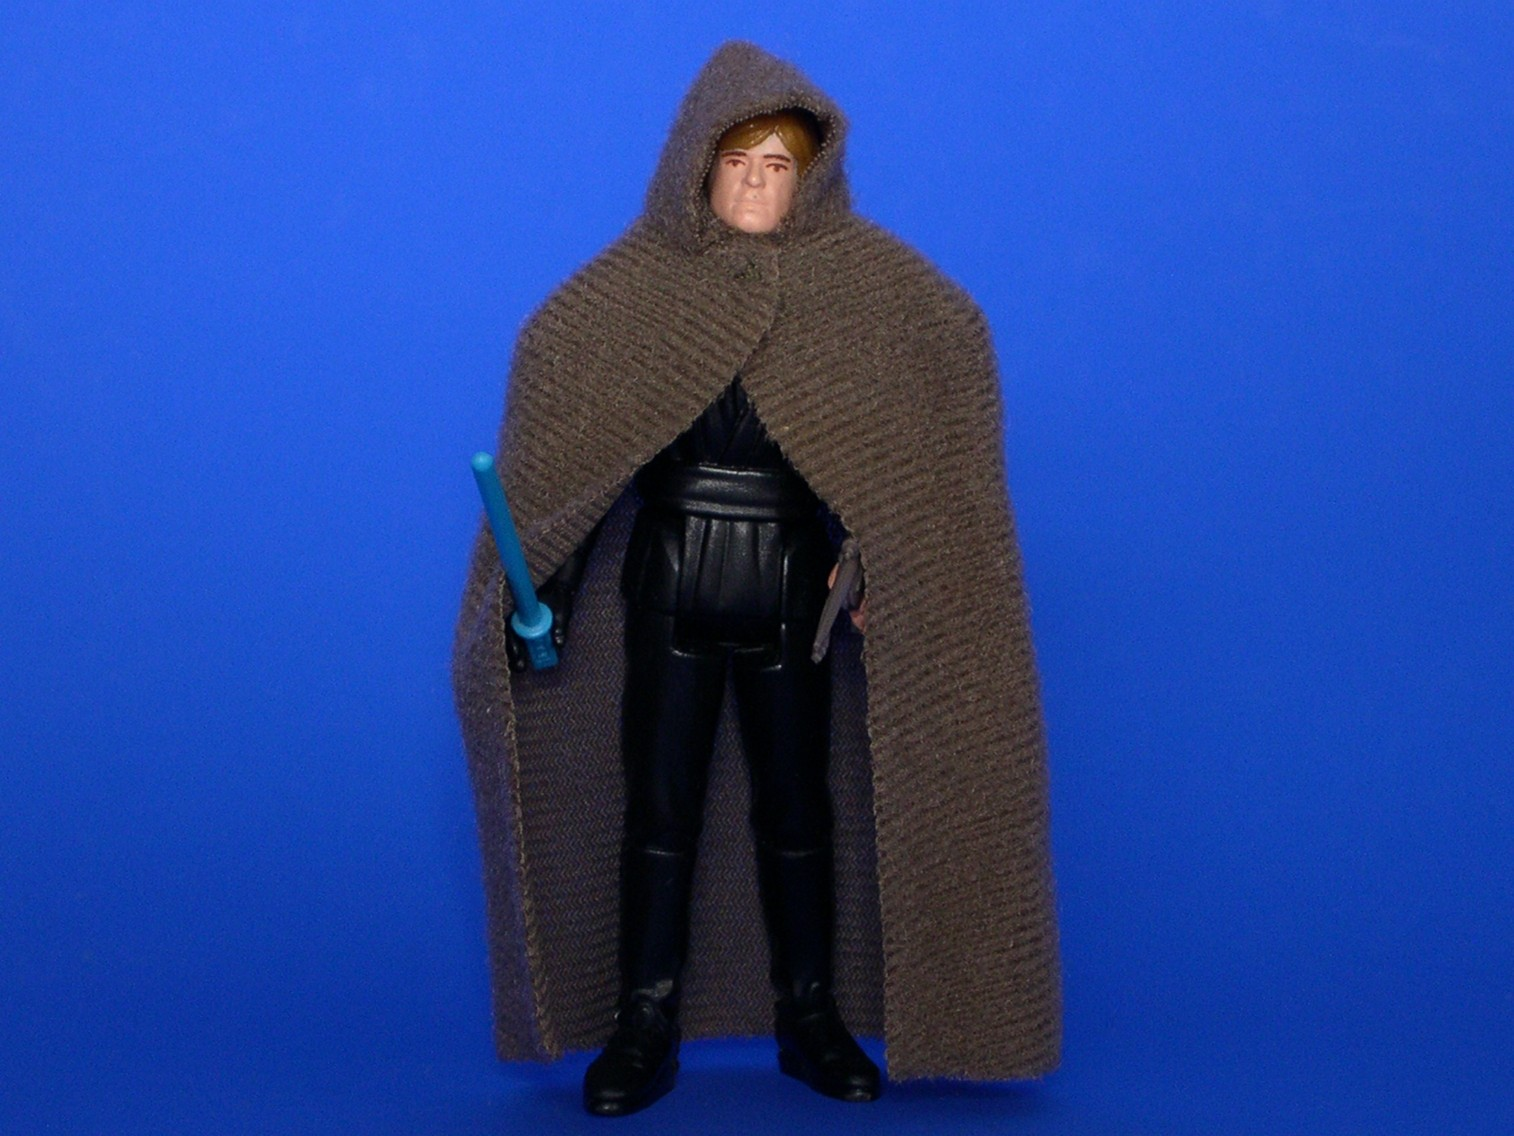 luke skywalker jedi knight outfit brown plastic head with painted